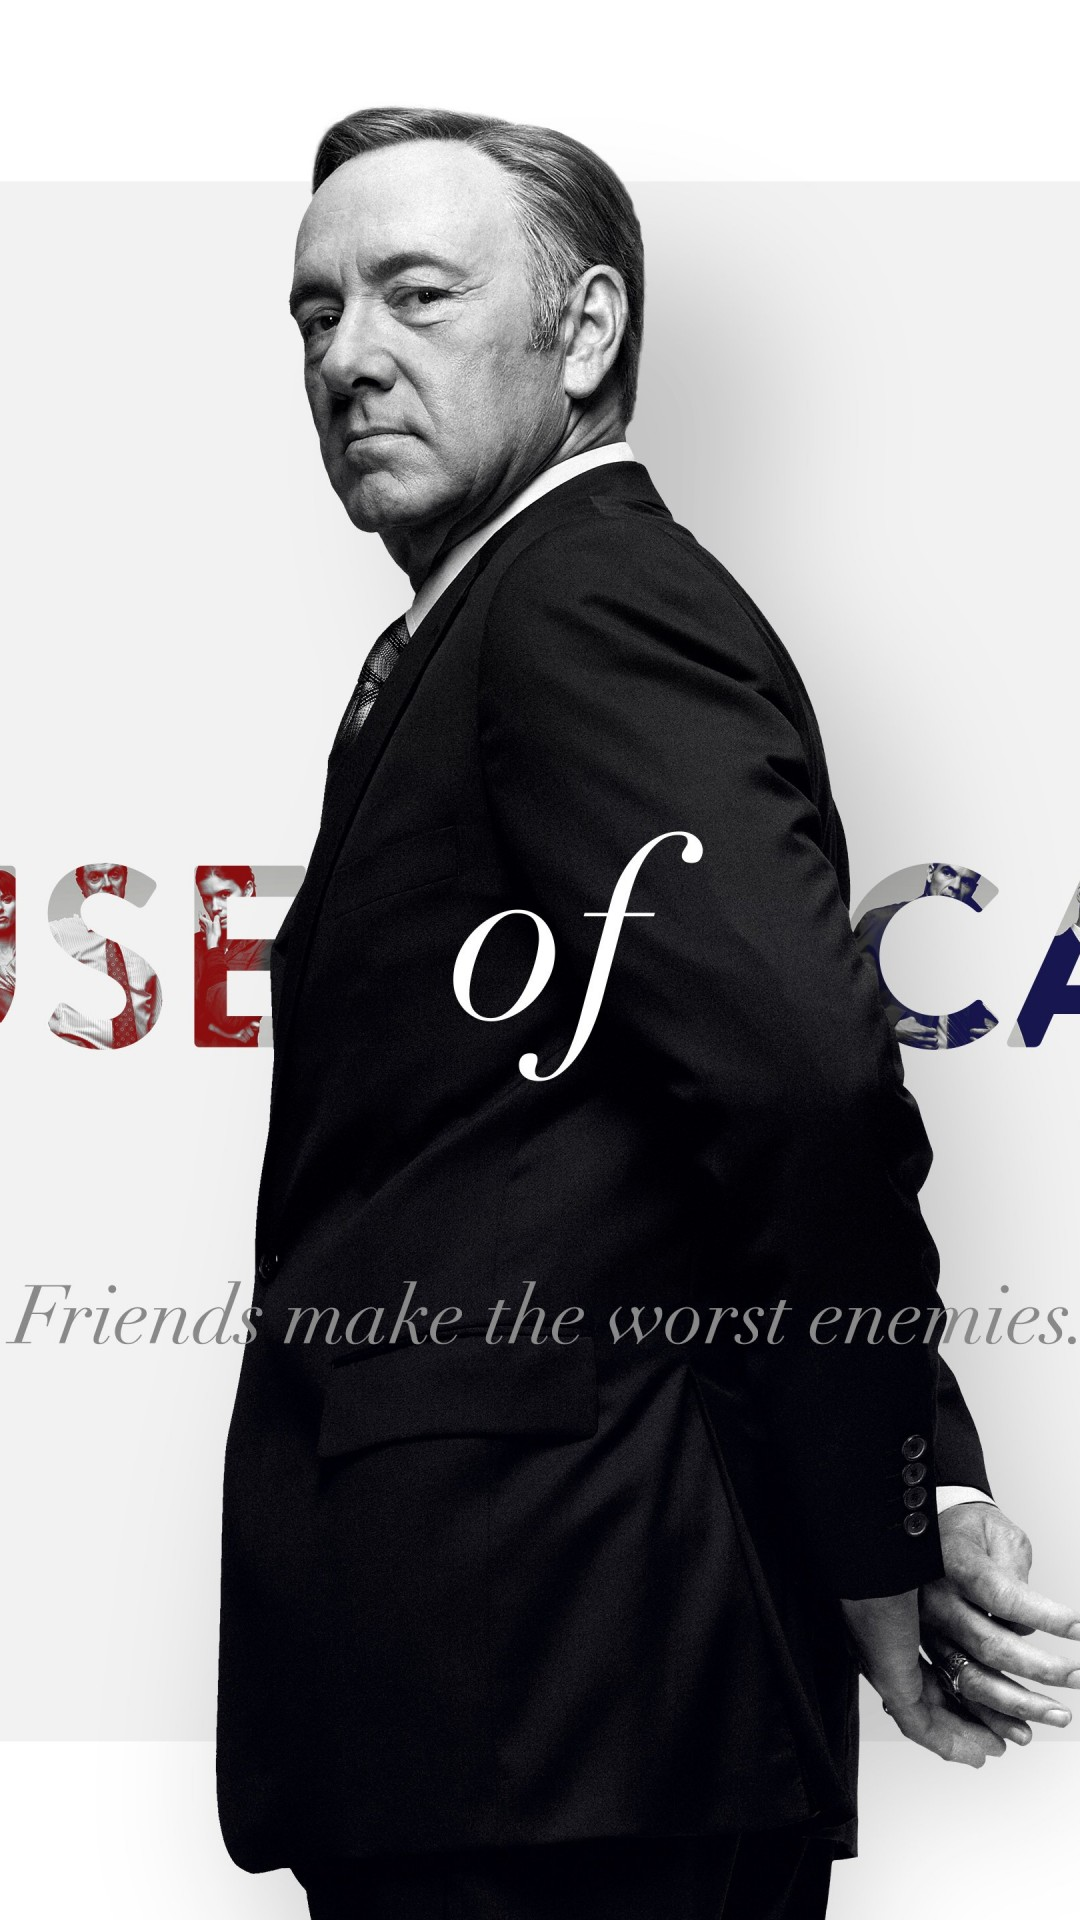 Frank Underwood - House of Cards Wallpaper for SAMSUNG Galaxy S5